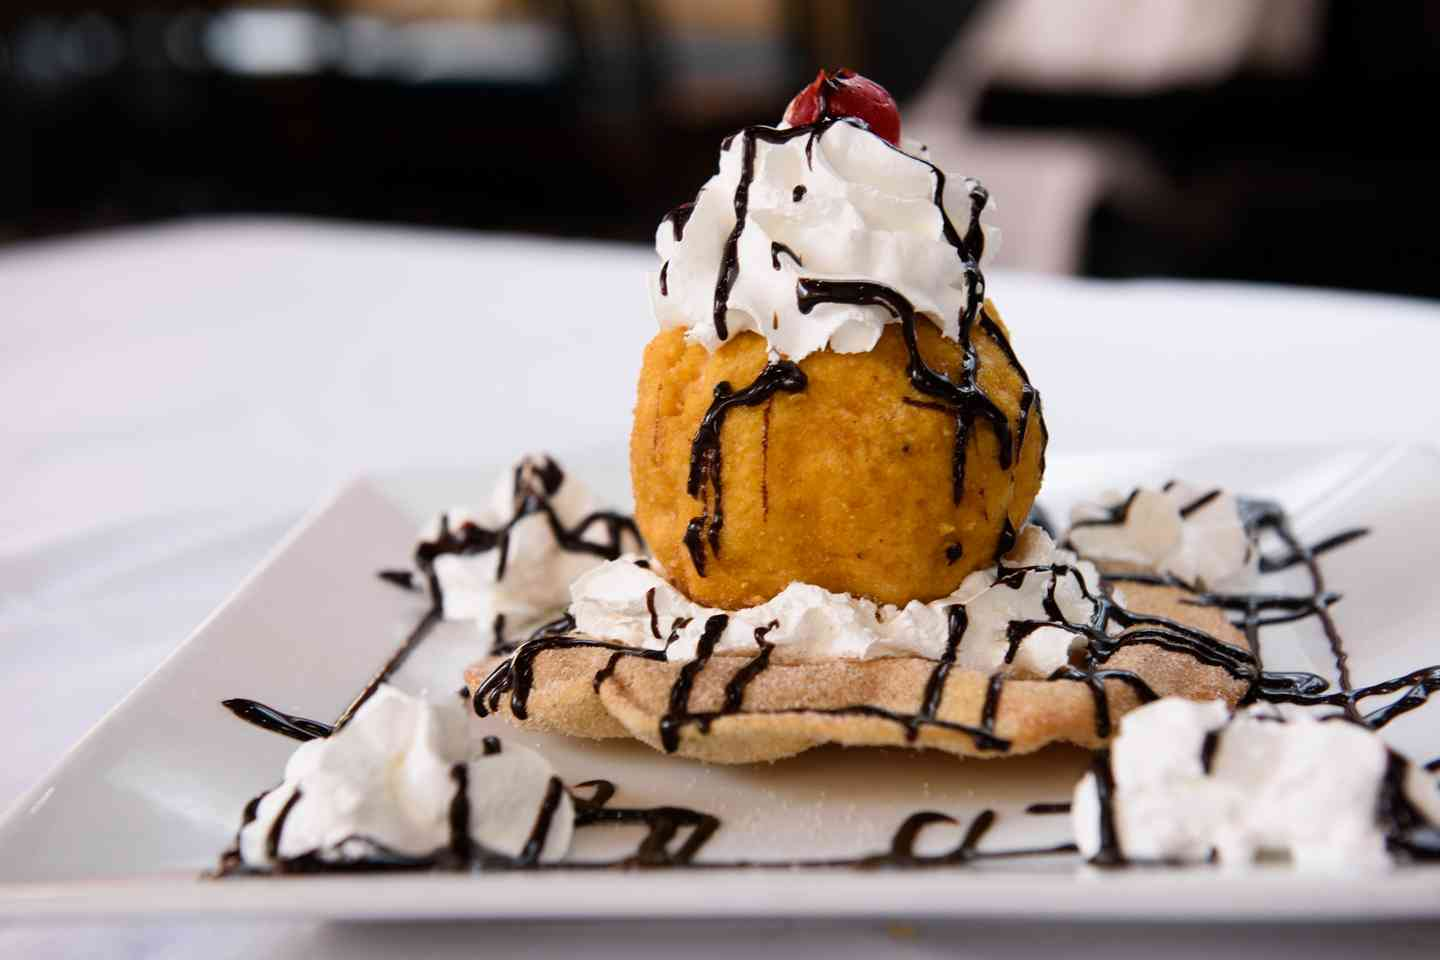 Mexican Fried Iced Cream